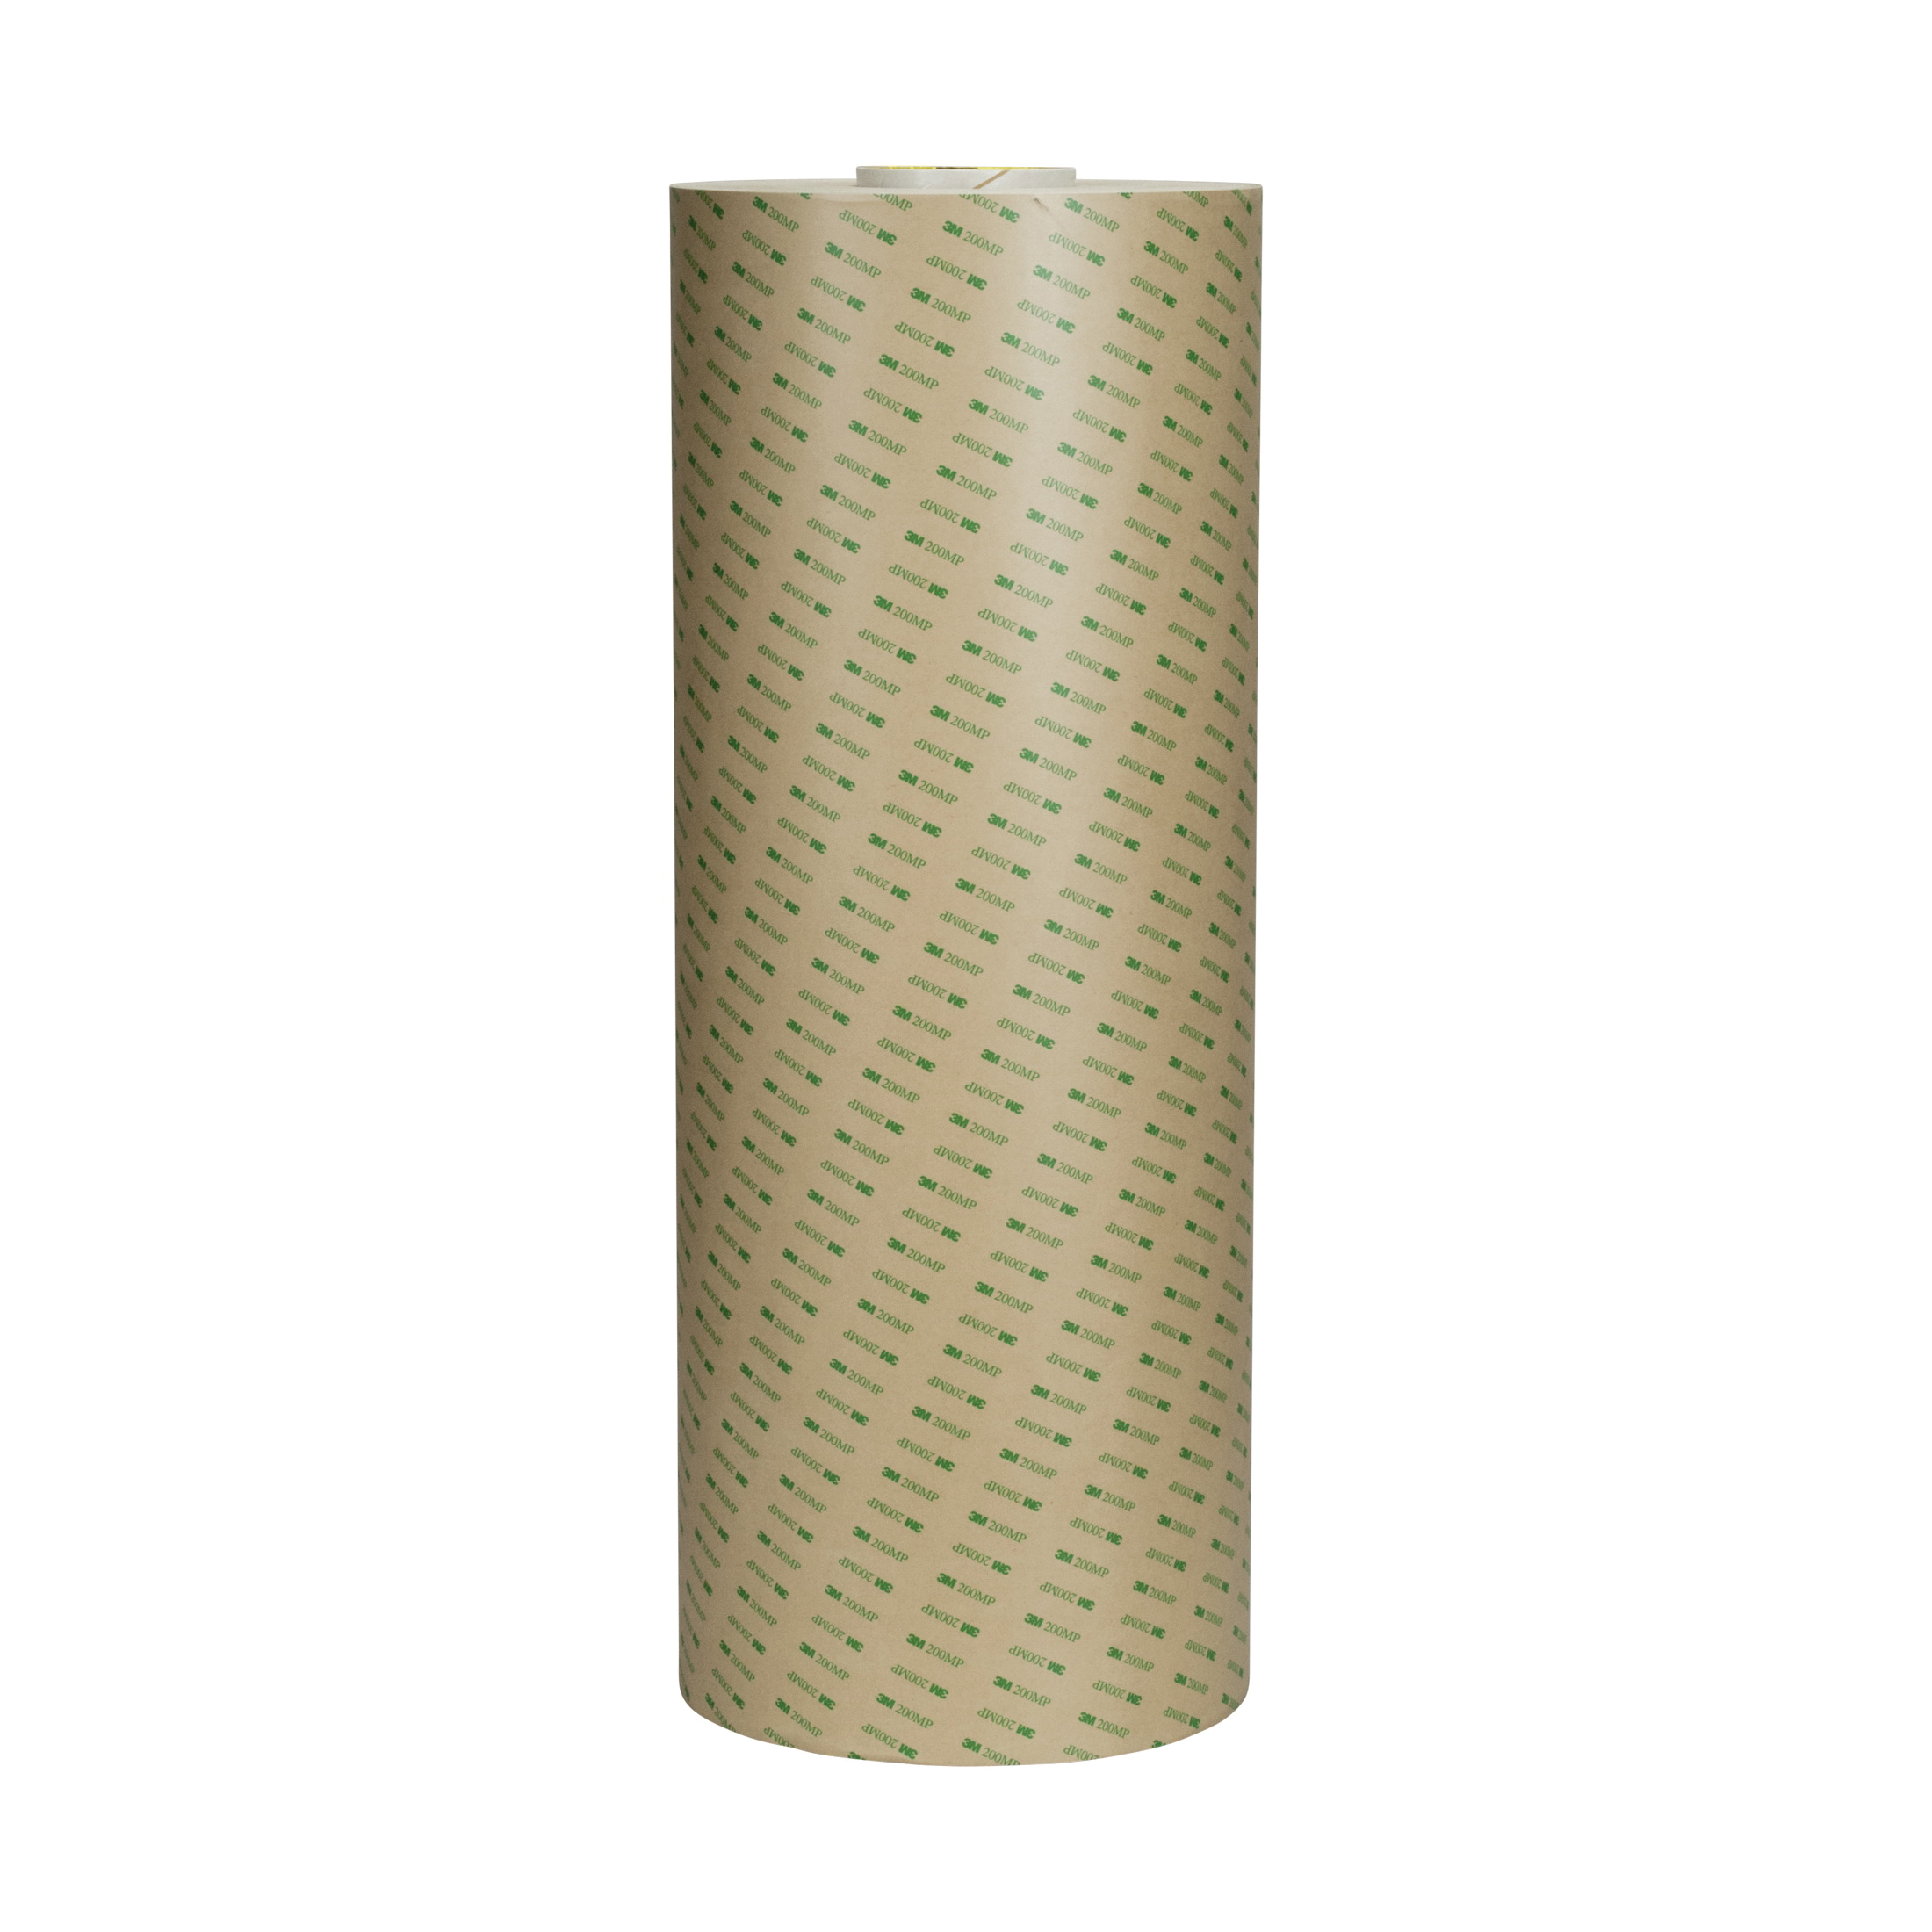 3M™ 021200-24640 High Performance Medium Tack Adhesive Transfer Tape, 60 yd L x 24 in W, 8.2 mil THK, 2 mil 200MP Acrylic Adhesive, Clear